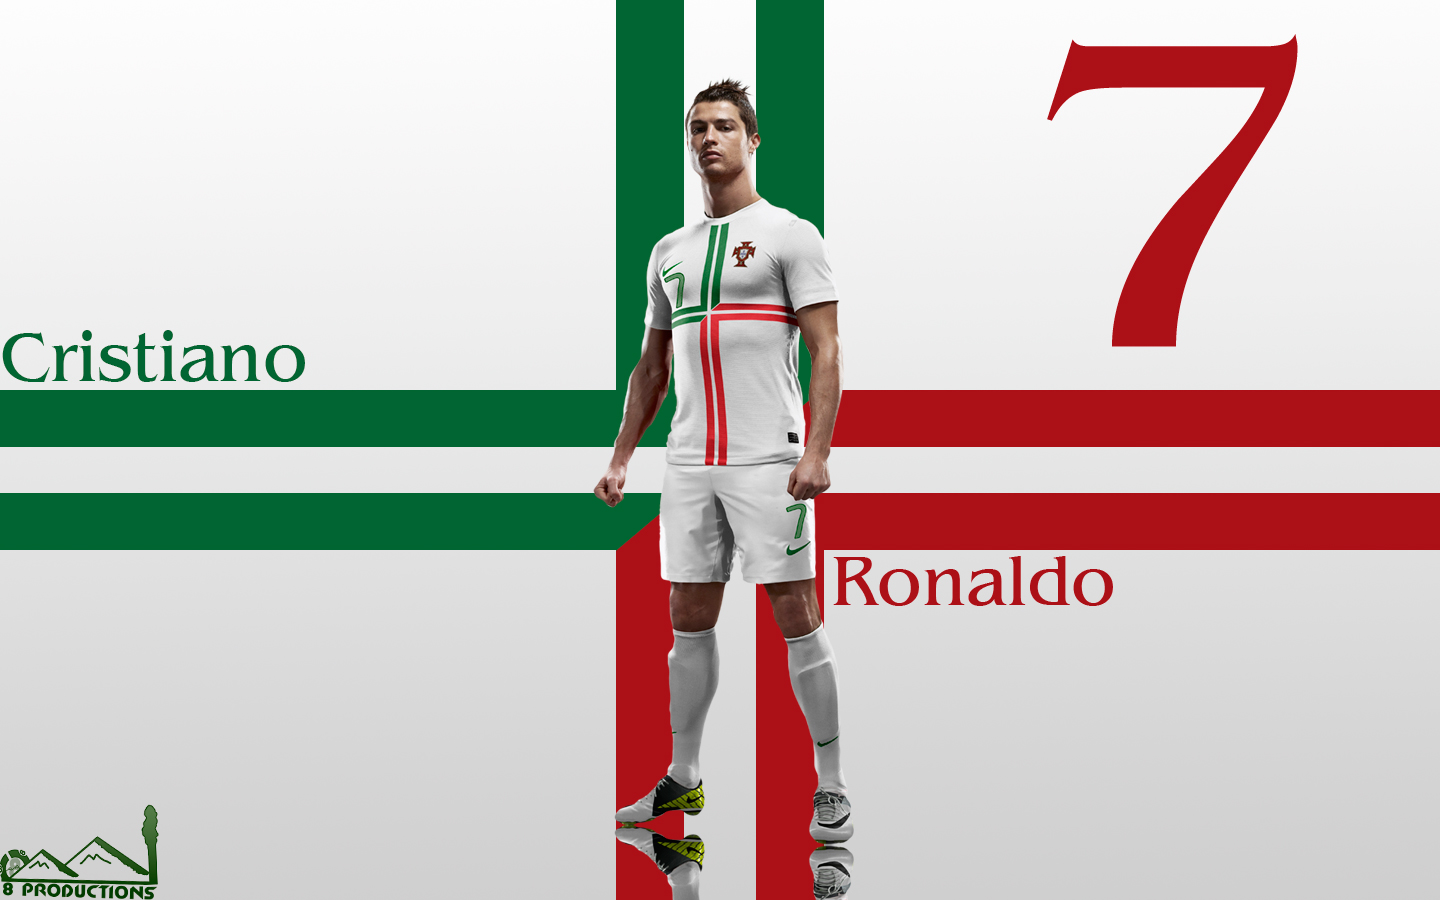 8 productions cristiano ronaldo portugal - C ronaldo wallpaper portugal ...